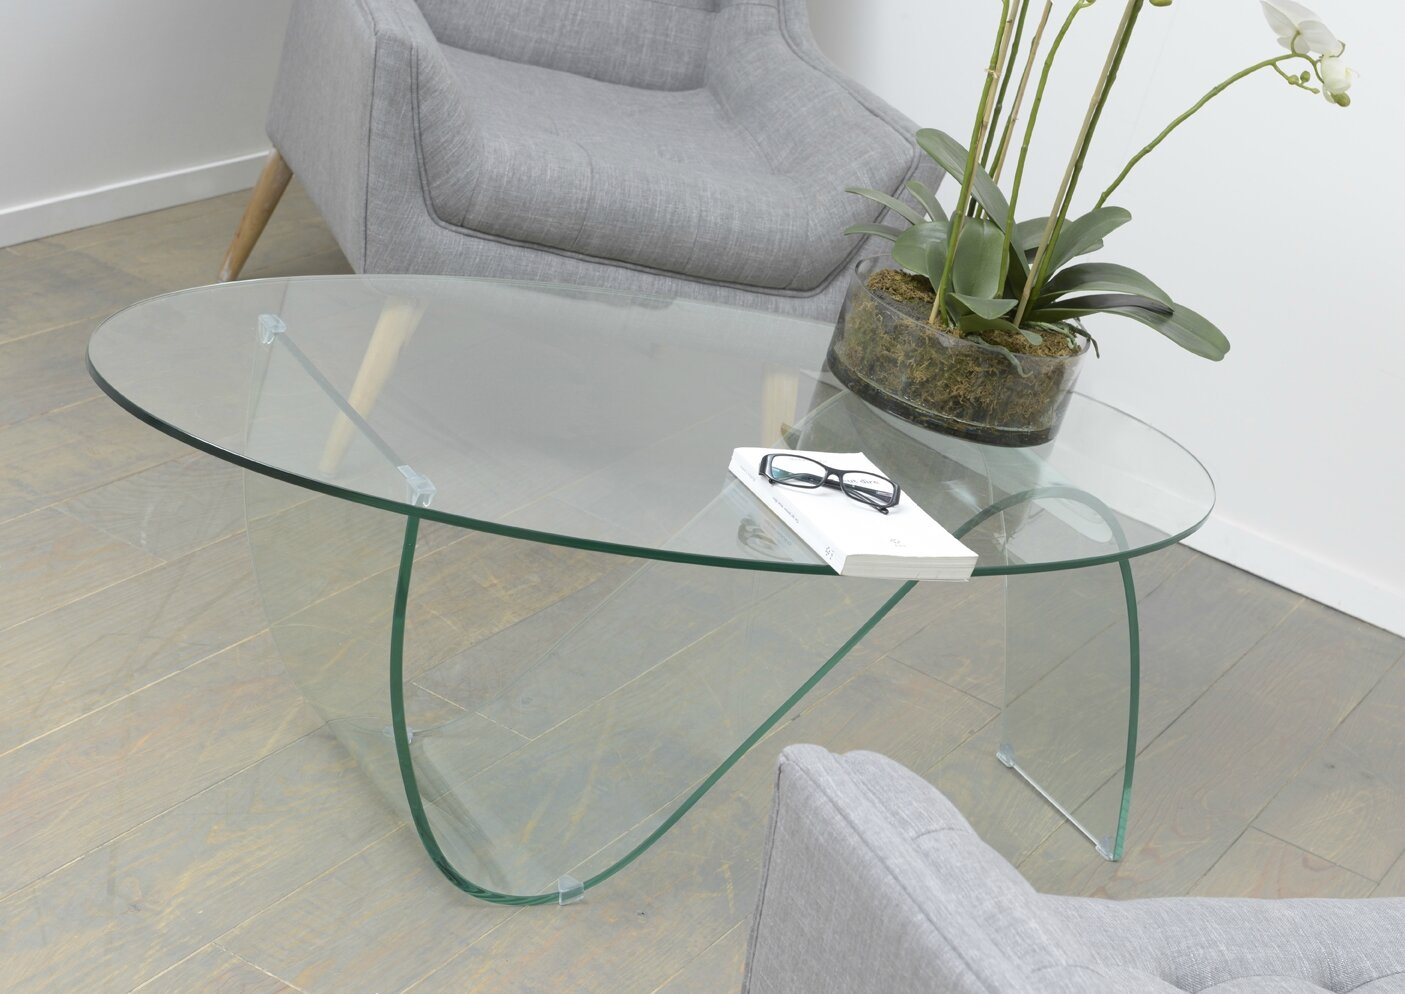 Table basse design grande dimension - Petite table basse en verre ...